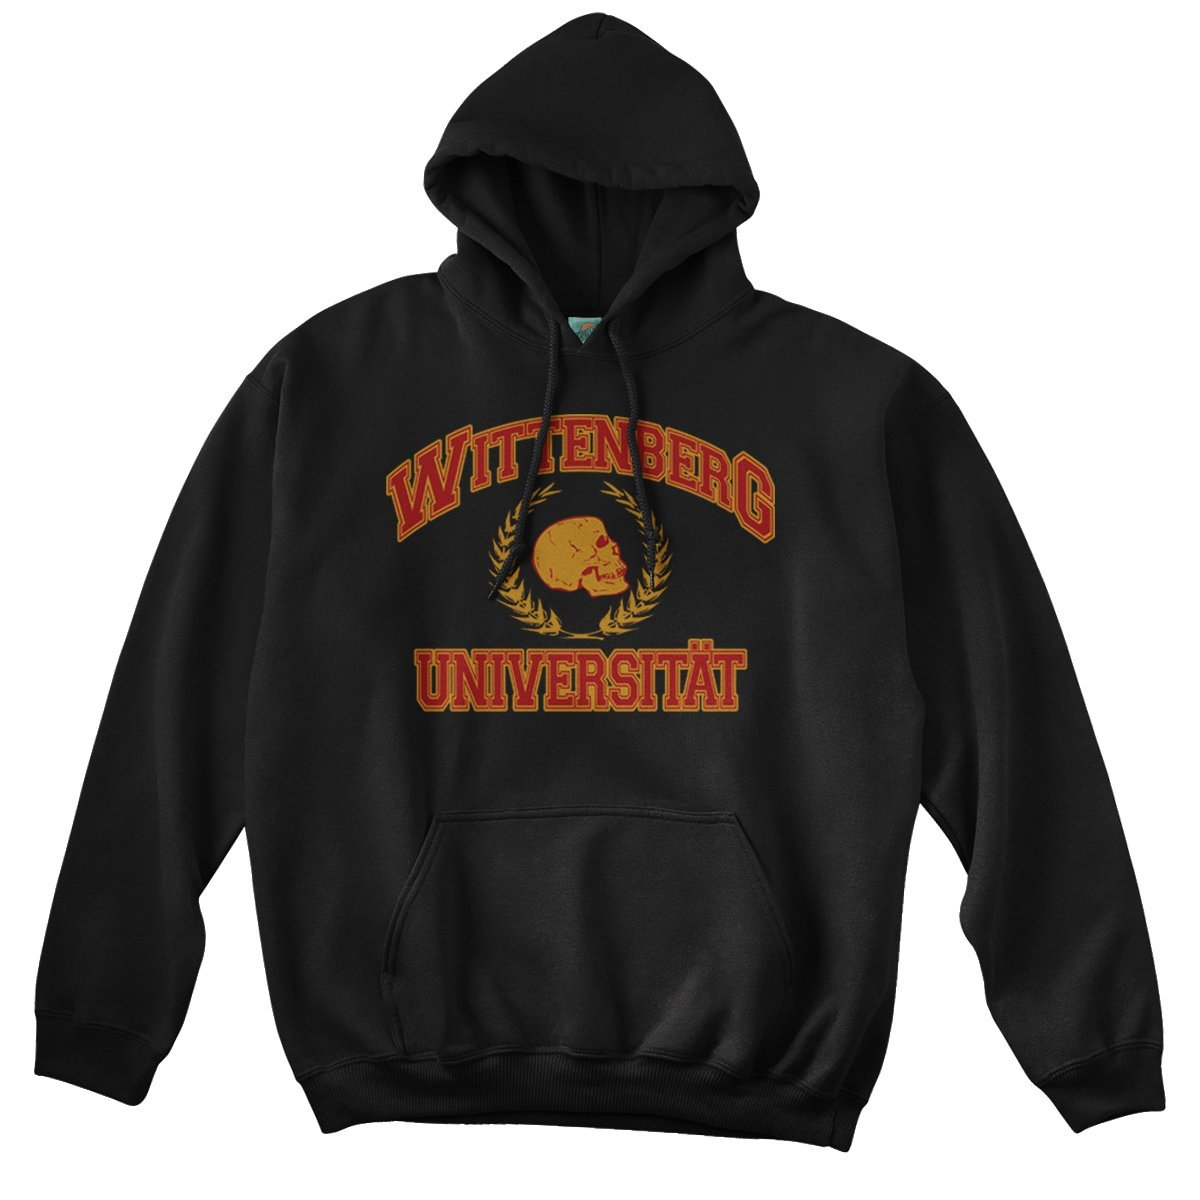 Bathroom Wall Hamlet Inspired Wittenberg UNIVERSITAT Shakespeare, Hoodie